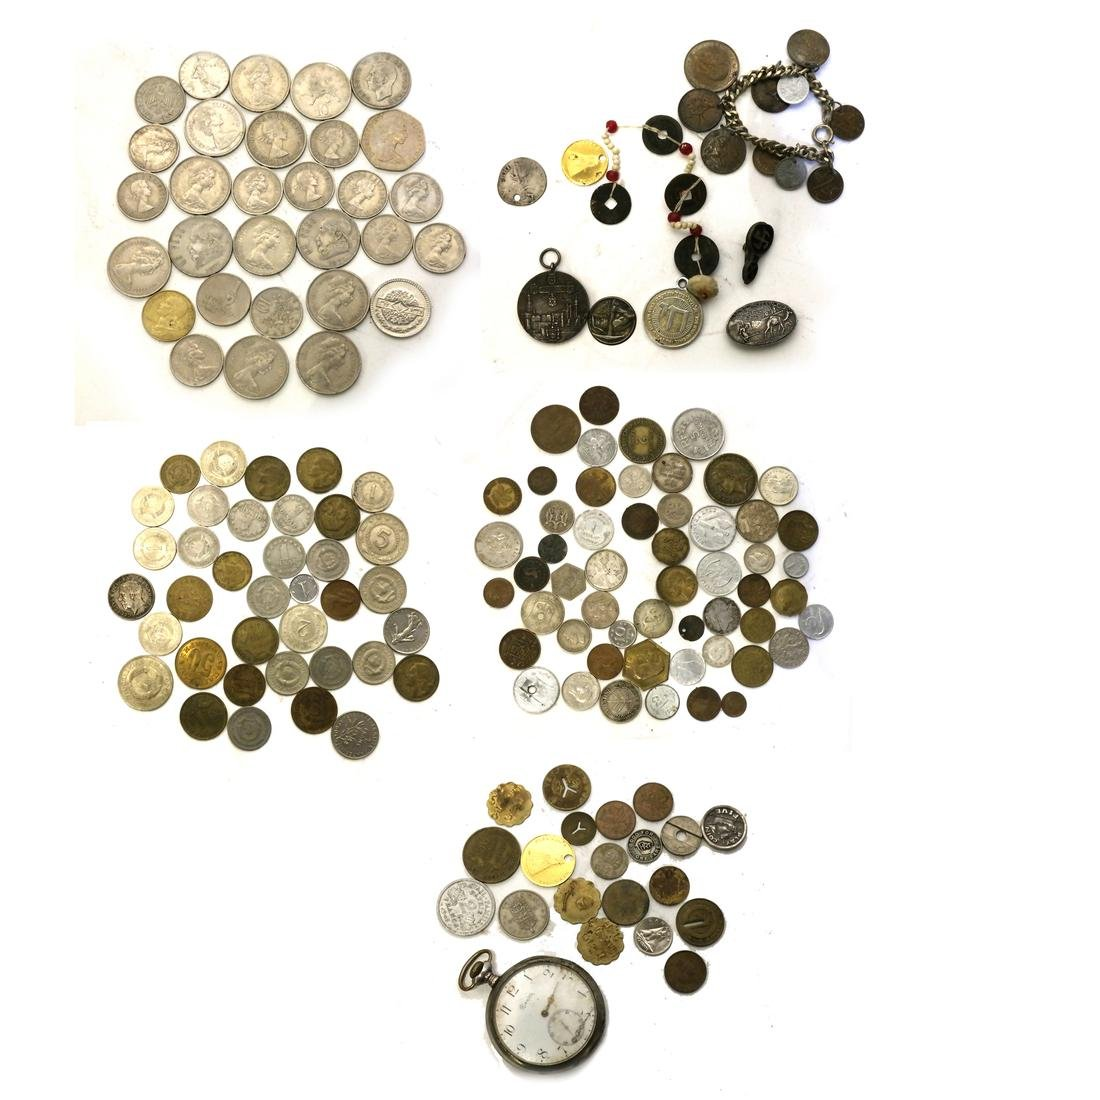 Coins and Assorted Silver